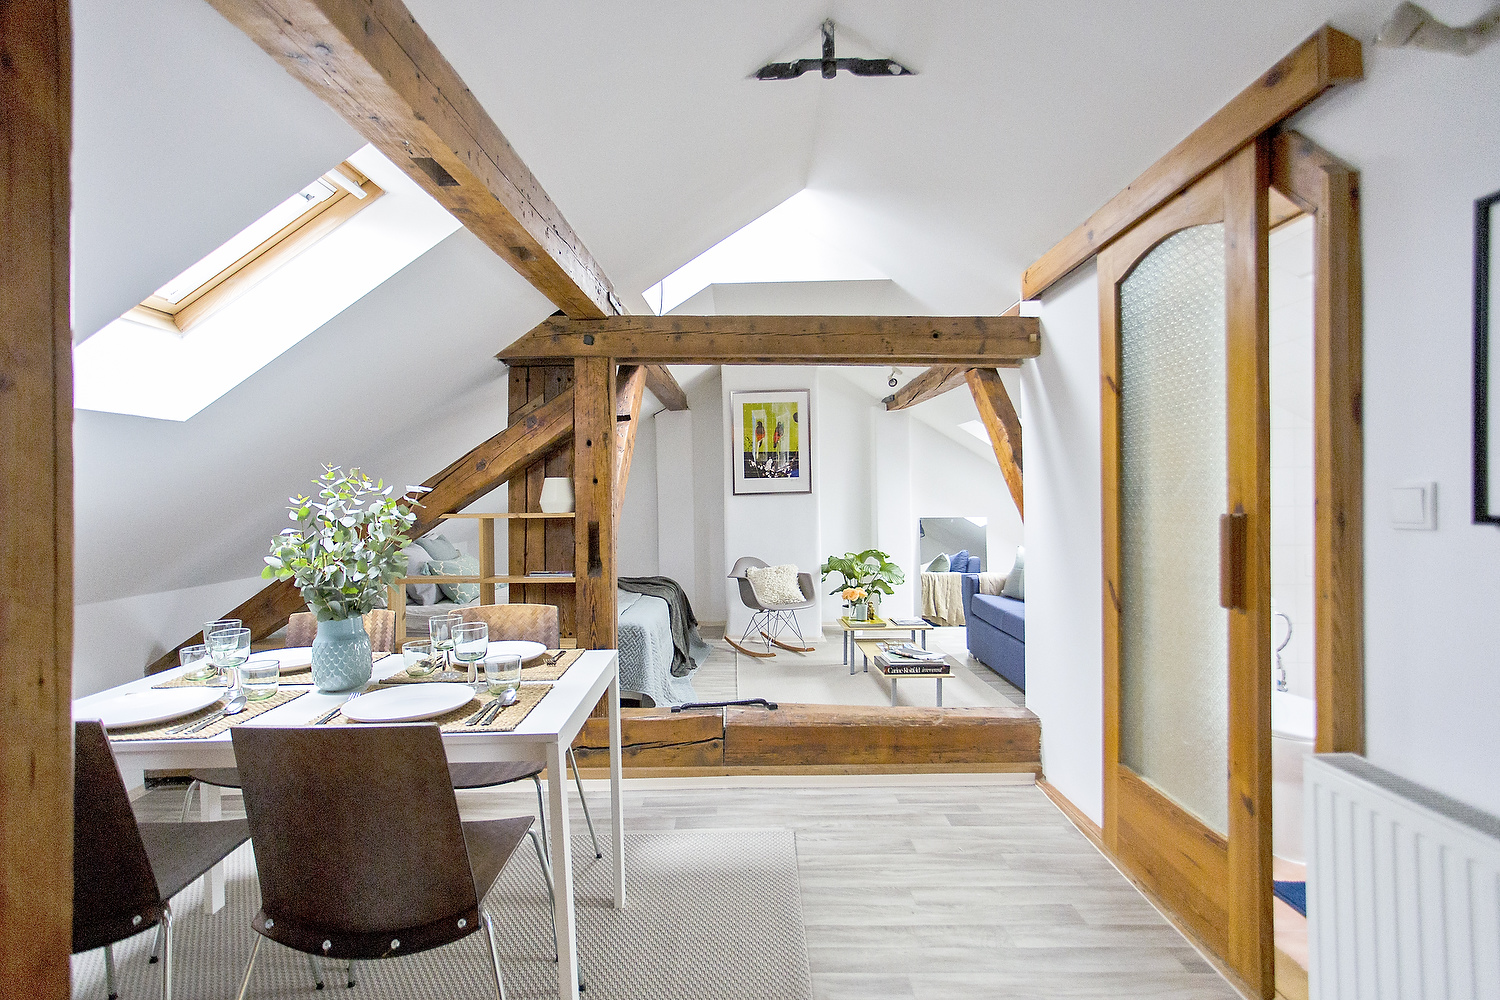 Enthralling Small Attic Studio Apartment Attic Bachelor Pad Original Wood Beams Idesignarch Bachelor Studio Apartments Ottawa Bachelor Studio Apartments Downtown Toronto apartment Bachelor Studio Apartments